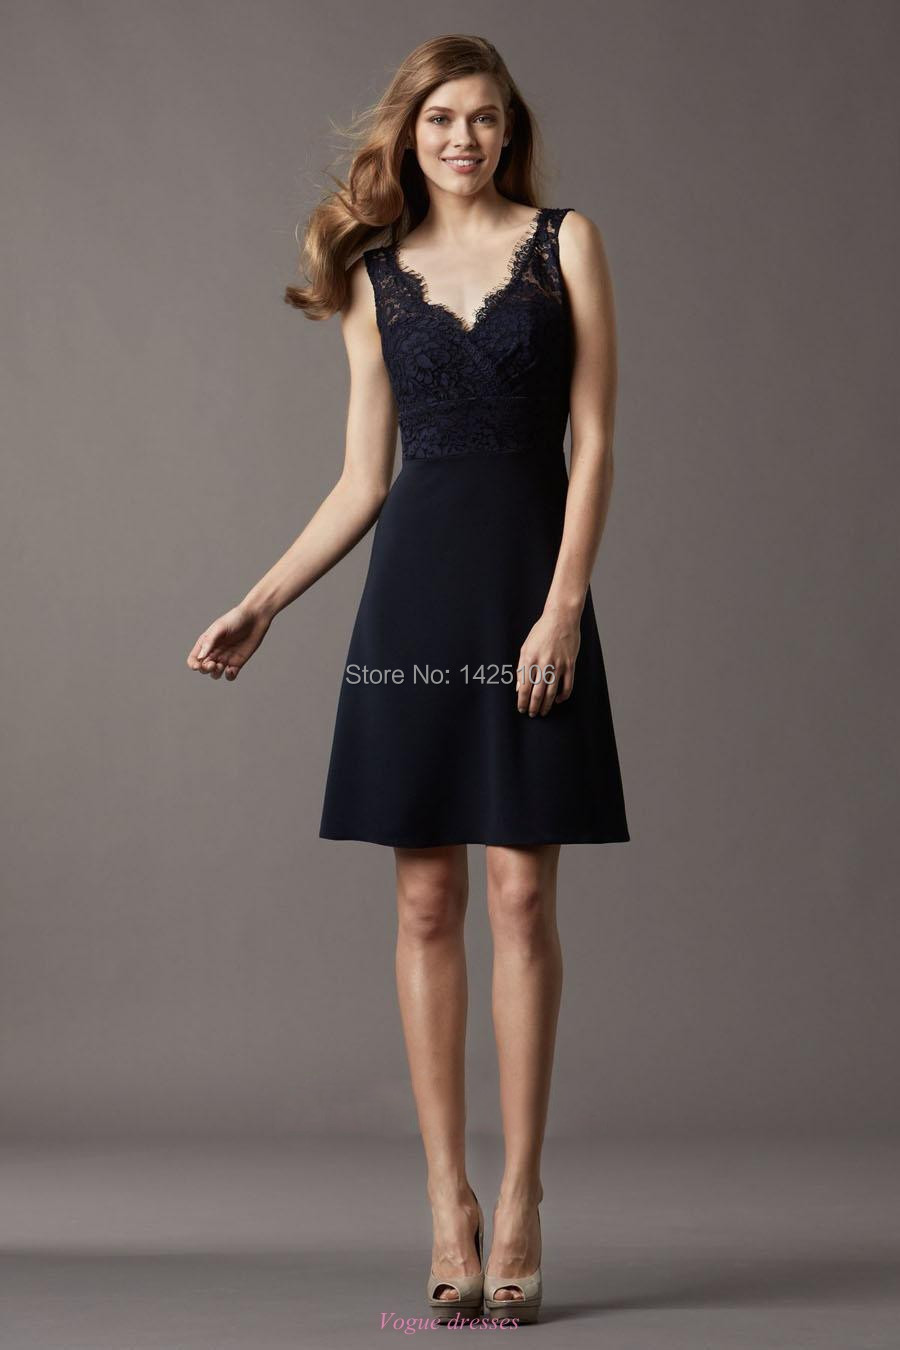 Compare Prices on Black Junior Dress- Online Shopping/Buy Low ...